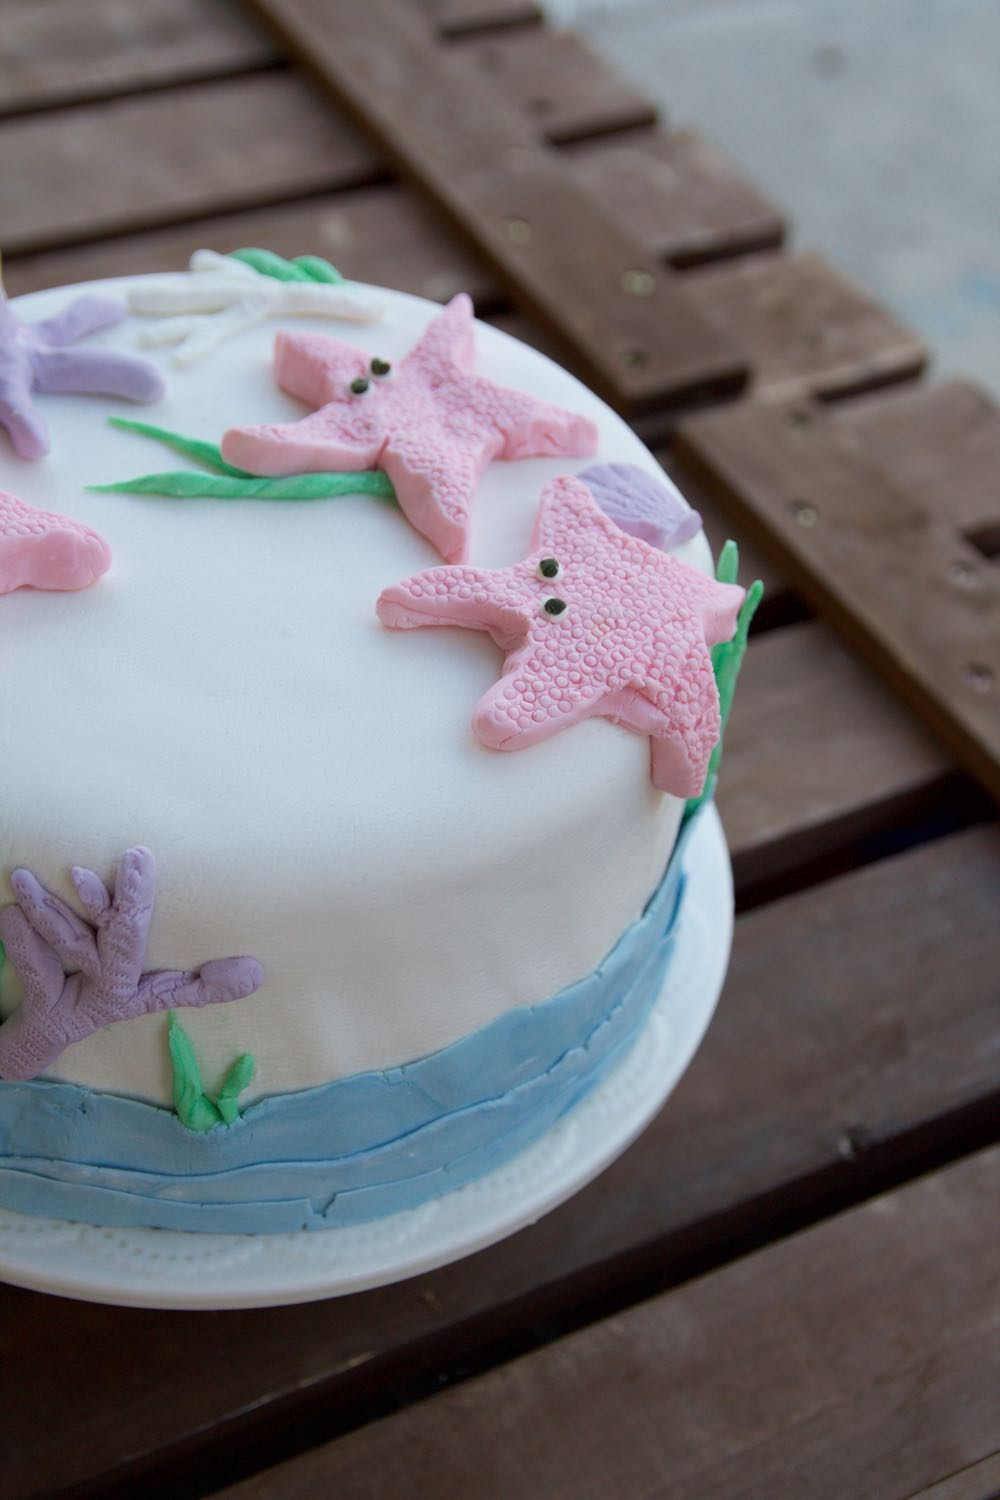 fondant cake with starfish, waves, and octopus